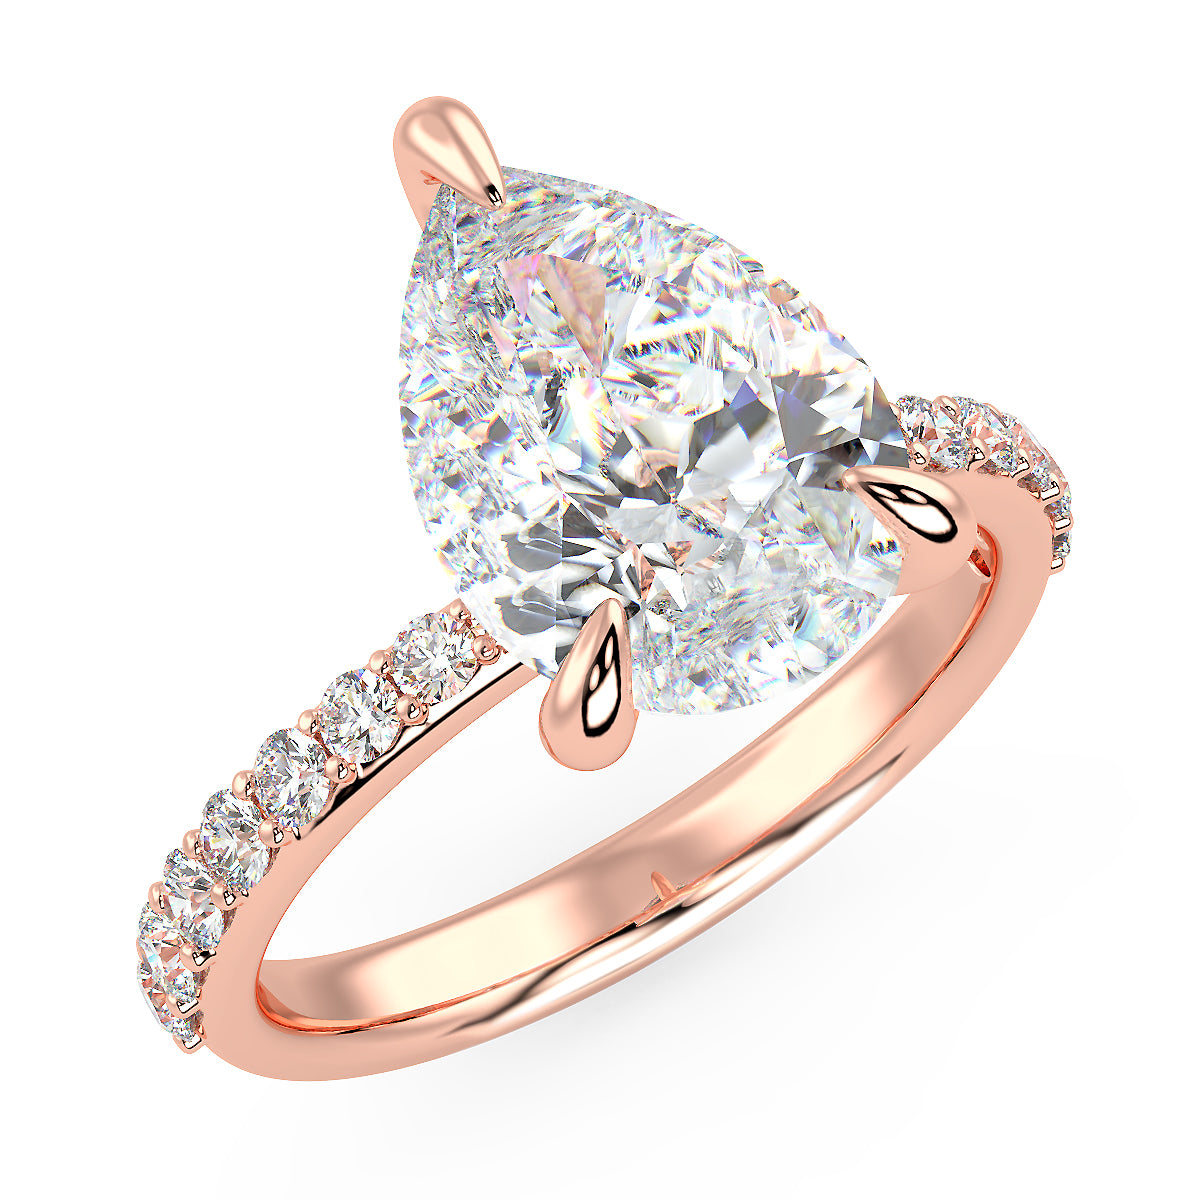 Meteor Engagement Ring in Rose Gold